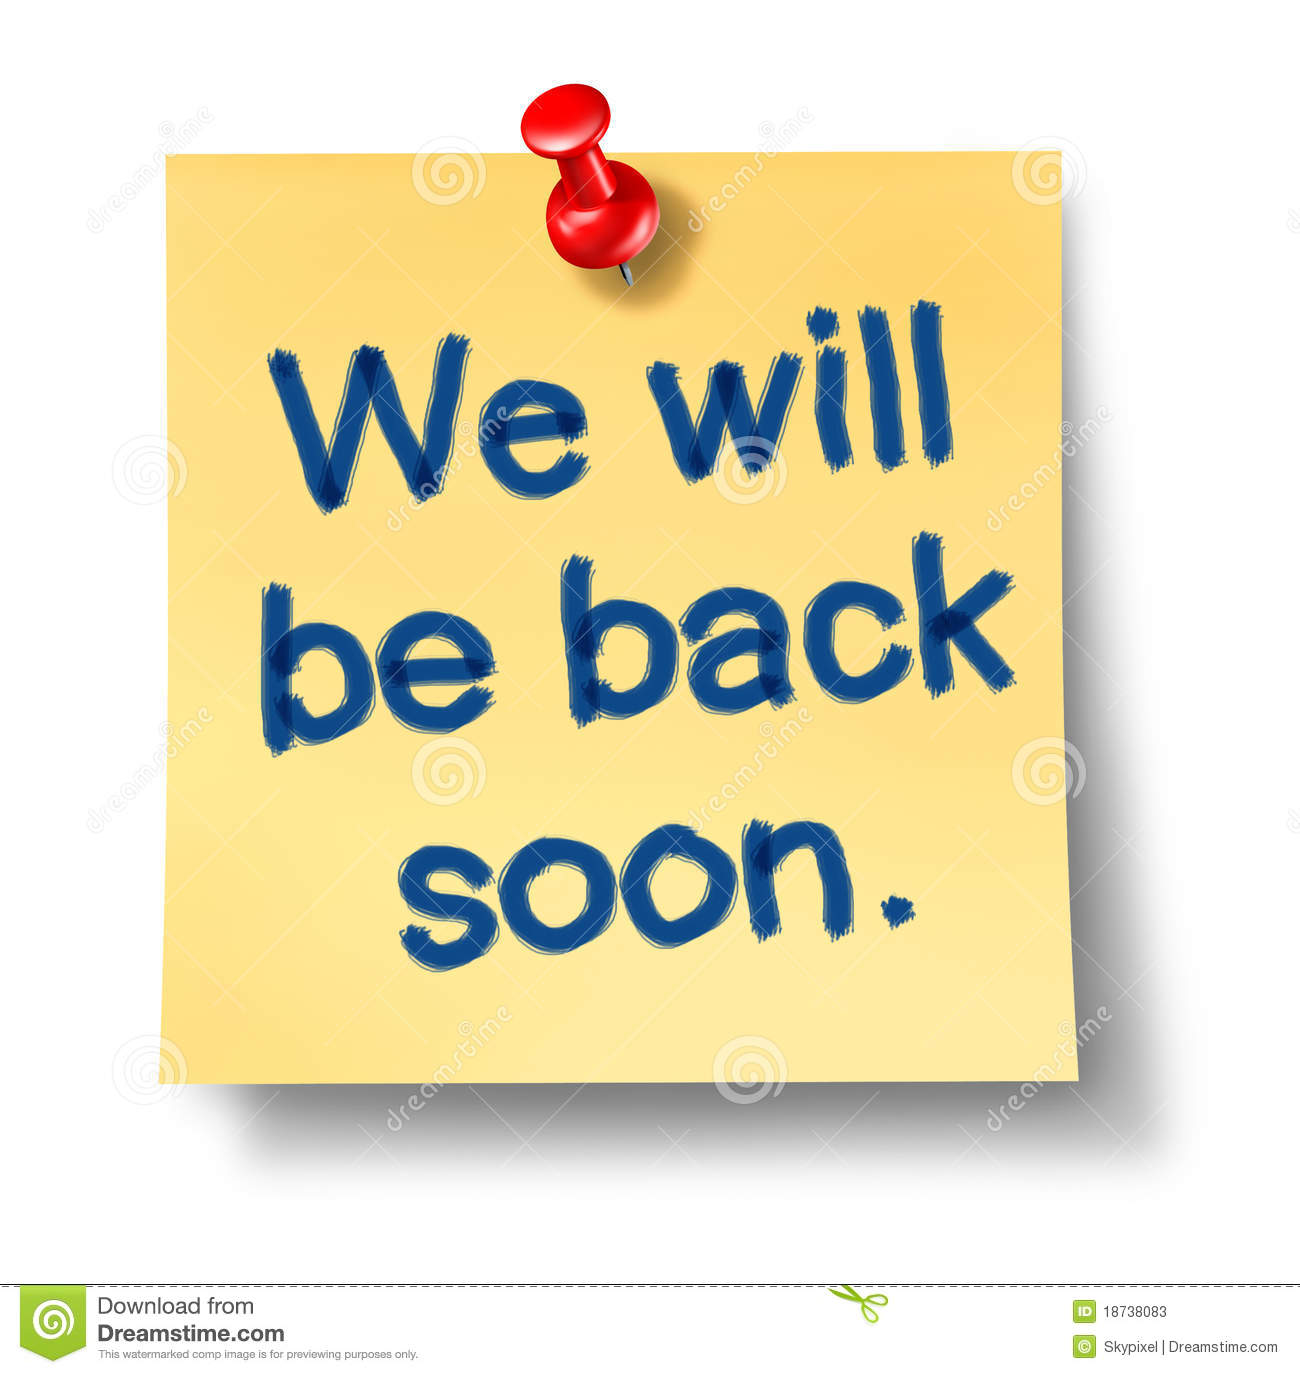 Will Be Back Soon Pictures to Pin on Pinterest.